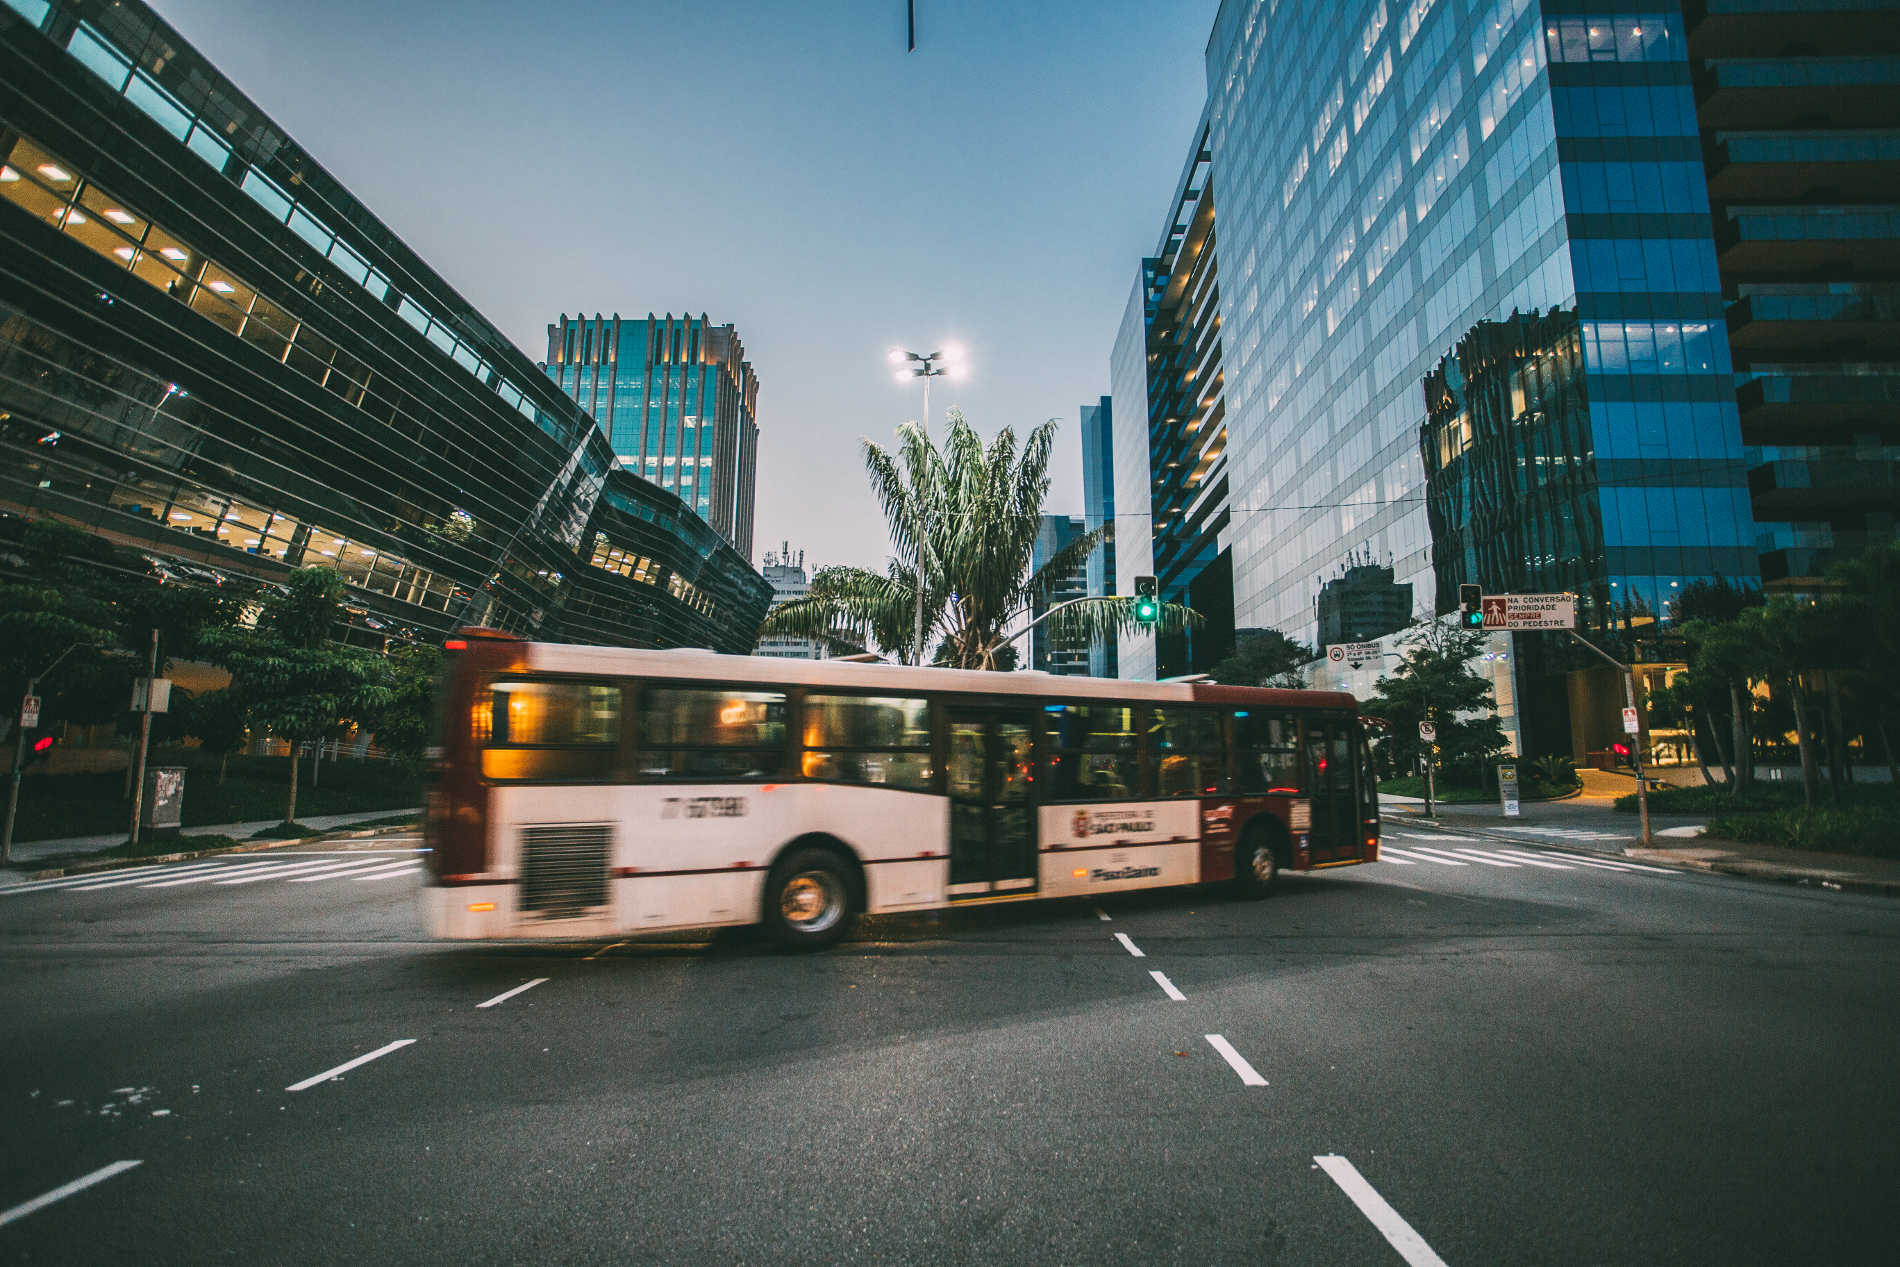 Using your smartphone on a bus with onboard streaming server